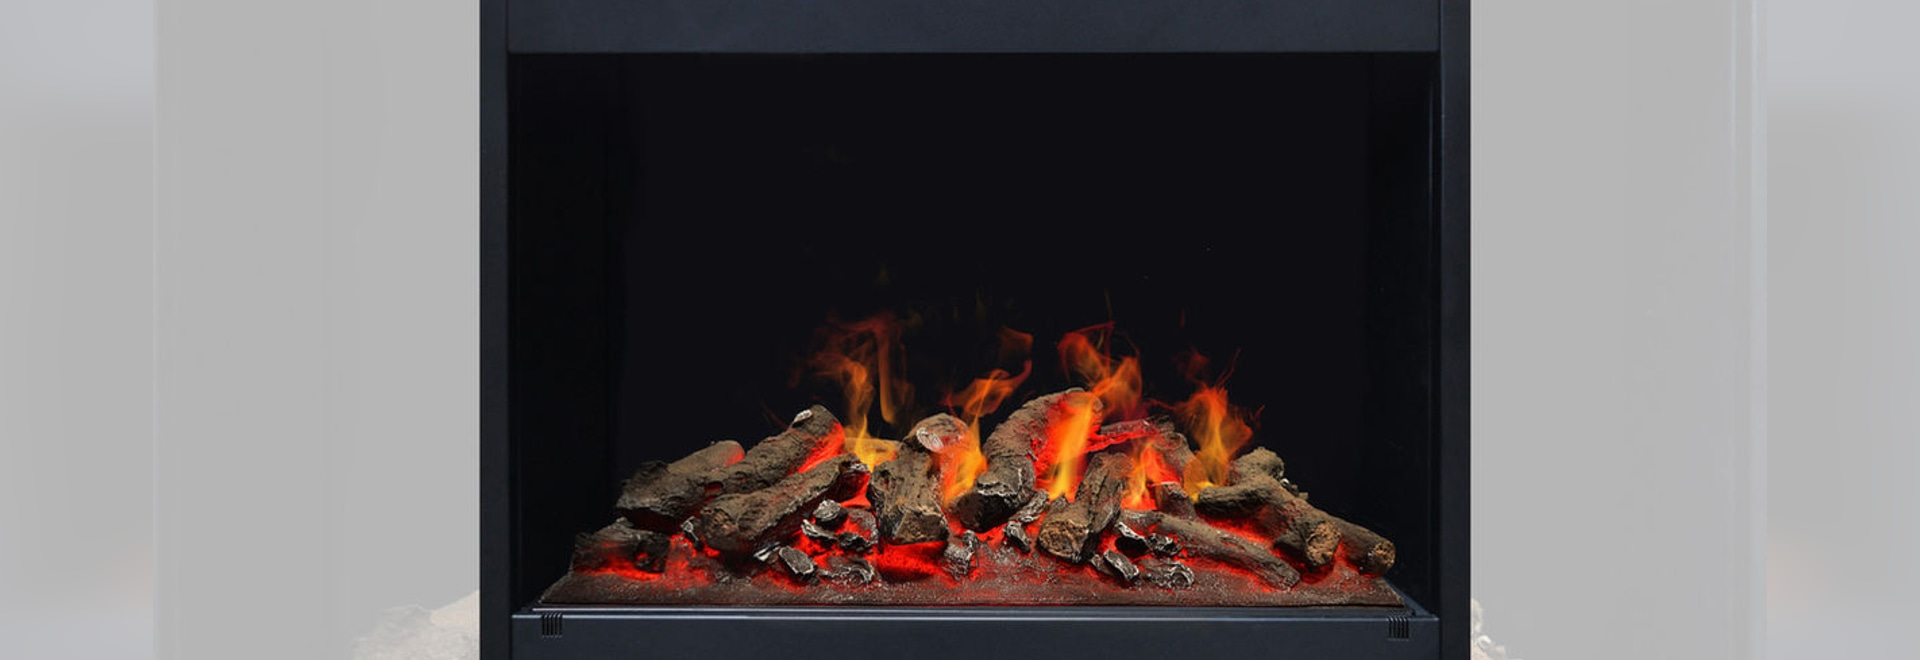 Amazing Bulldogsecurity.com Wiring Tiny Free Technical Service Bulletins Online Flat Dimarzio Ep1112 Dimarzio 3 Way Switch Young Tsb Bulletins SoftDiagram Of Solar Panel System NEW: Electrical Fireplace Insert By Ruby Fires   Ruby Fires